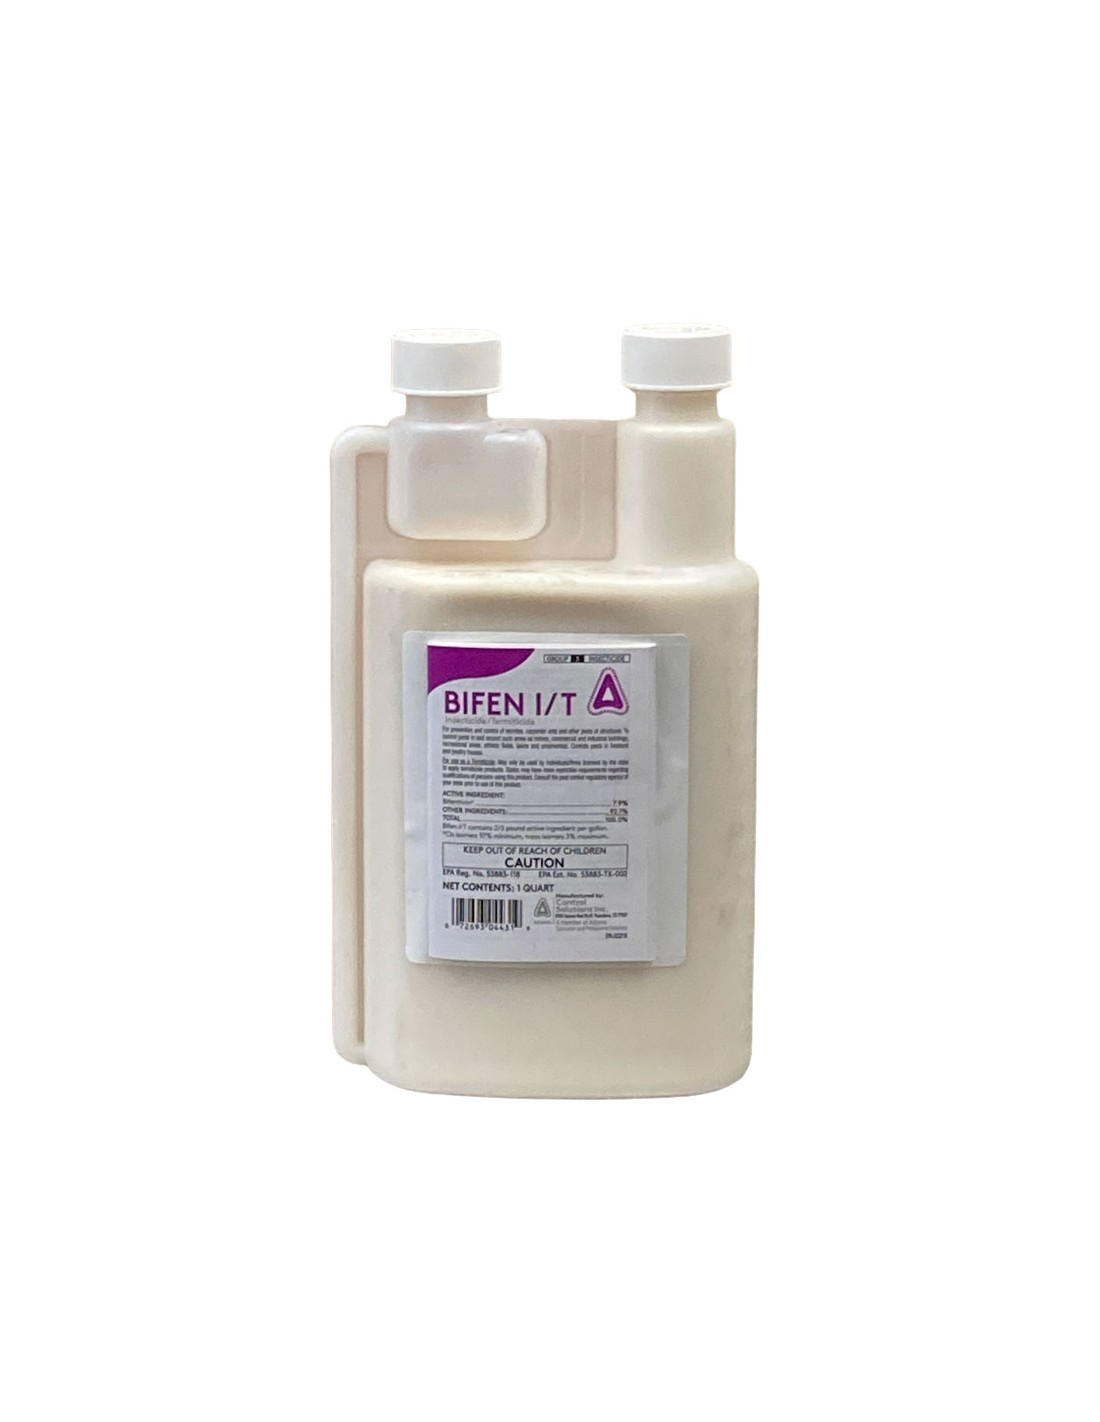 I want to know if BIFENI/T INSECTICIDE is this safe to spray inside. I have astma, is there a order